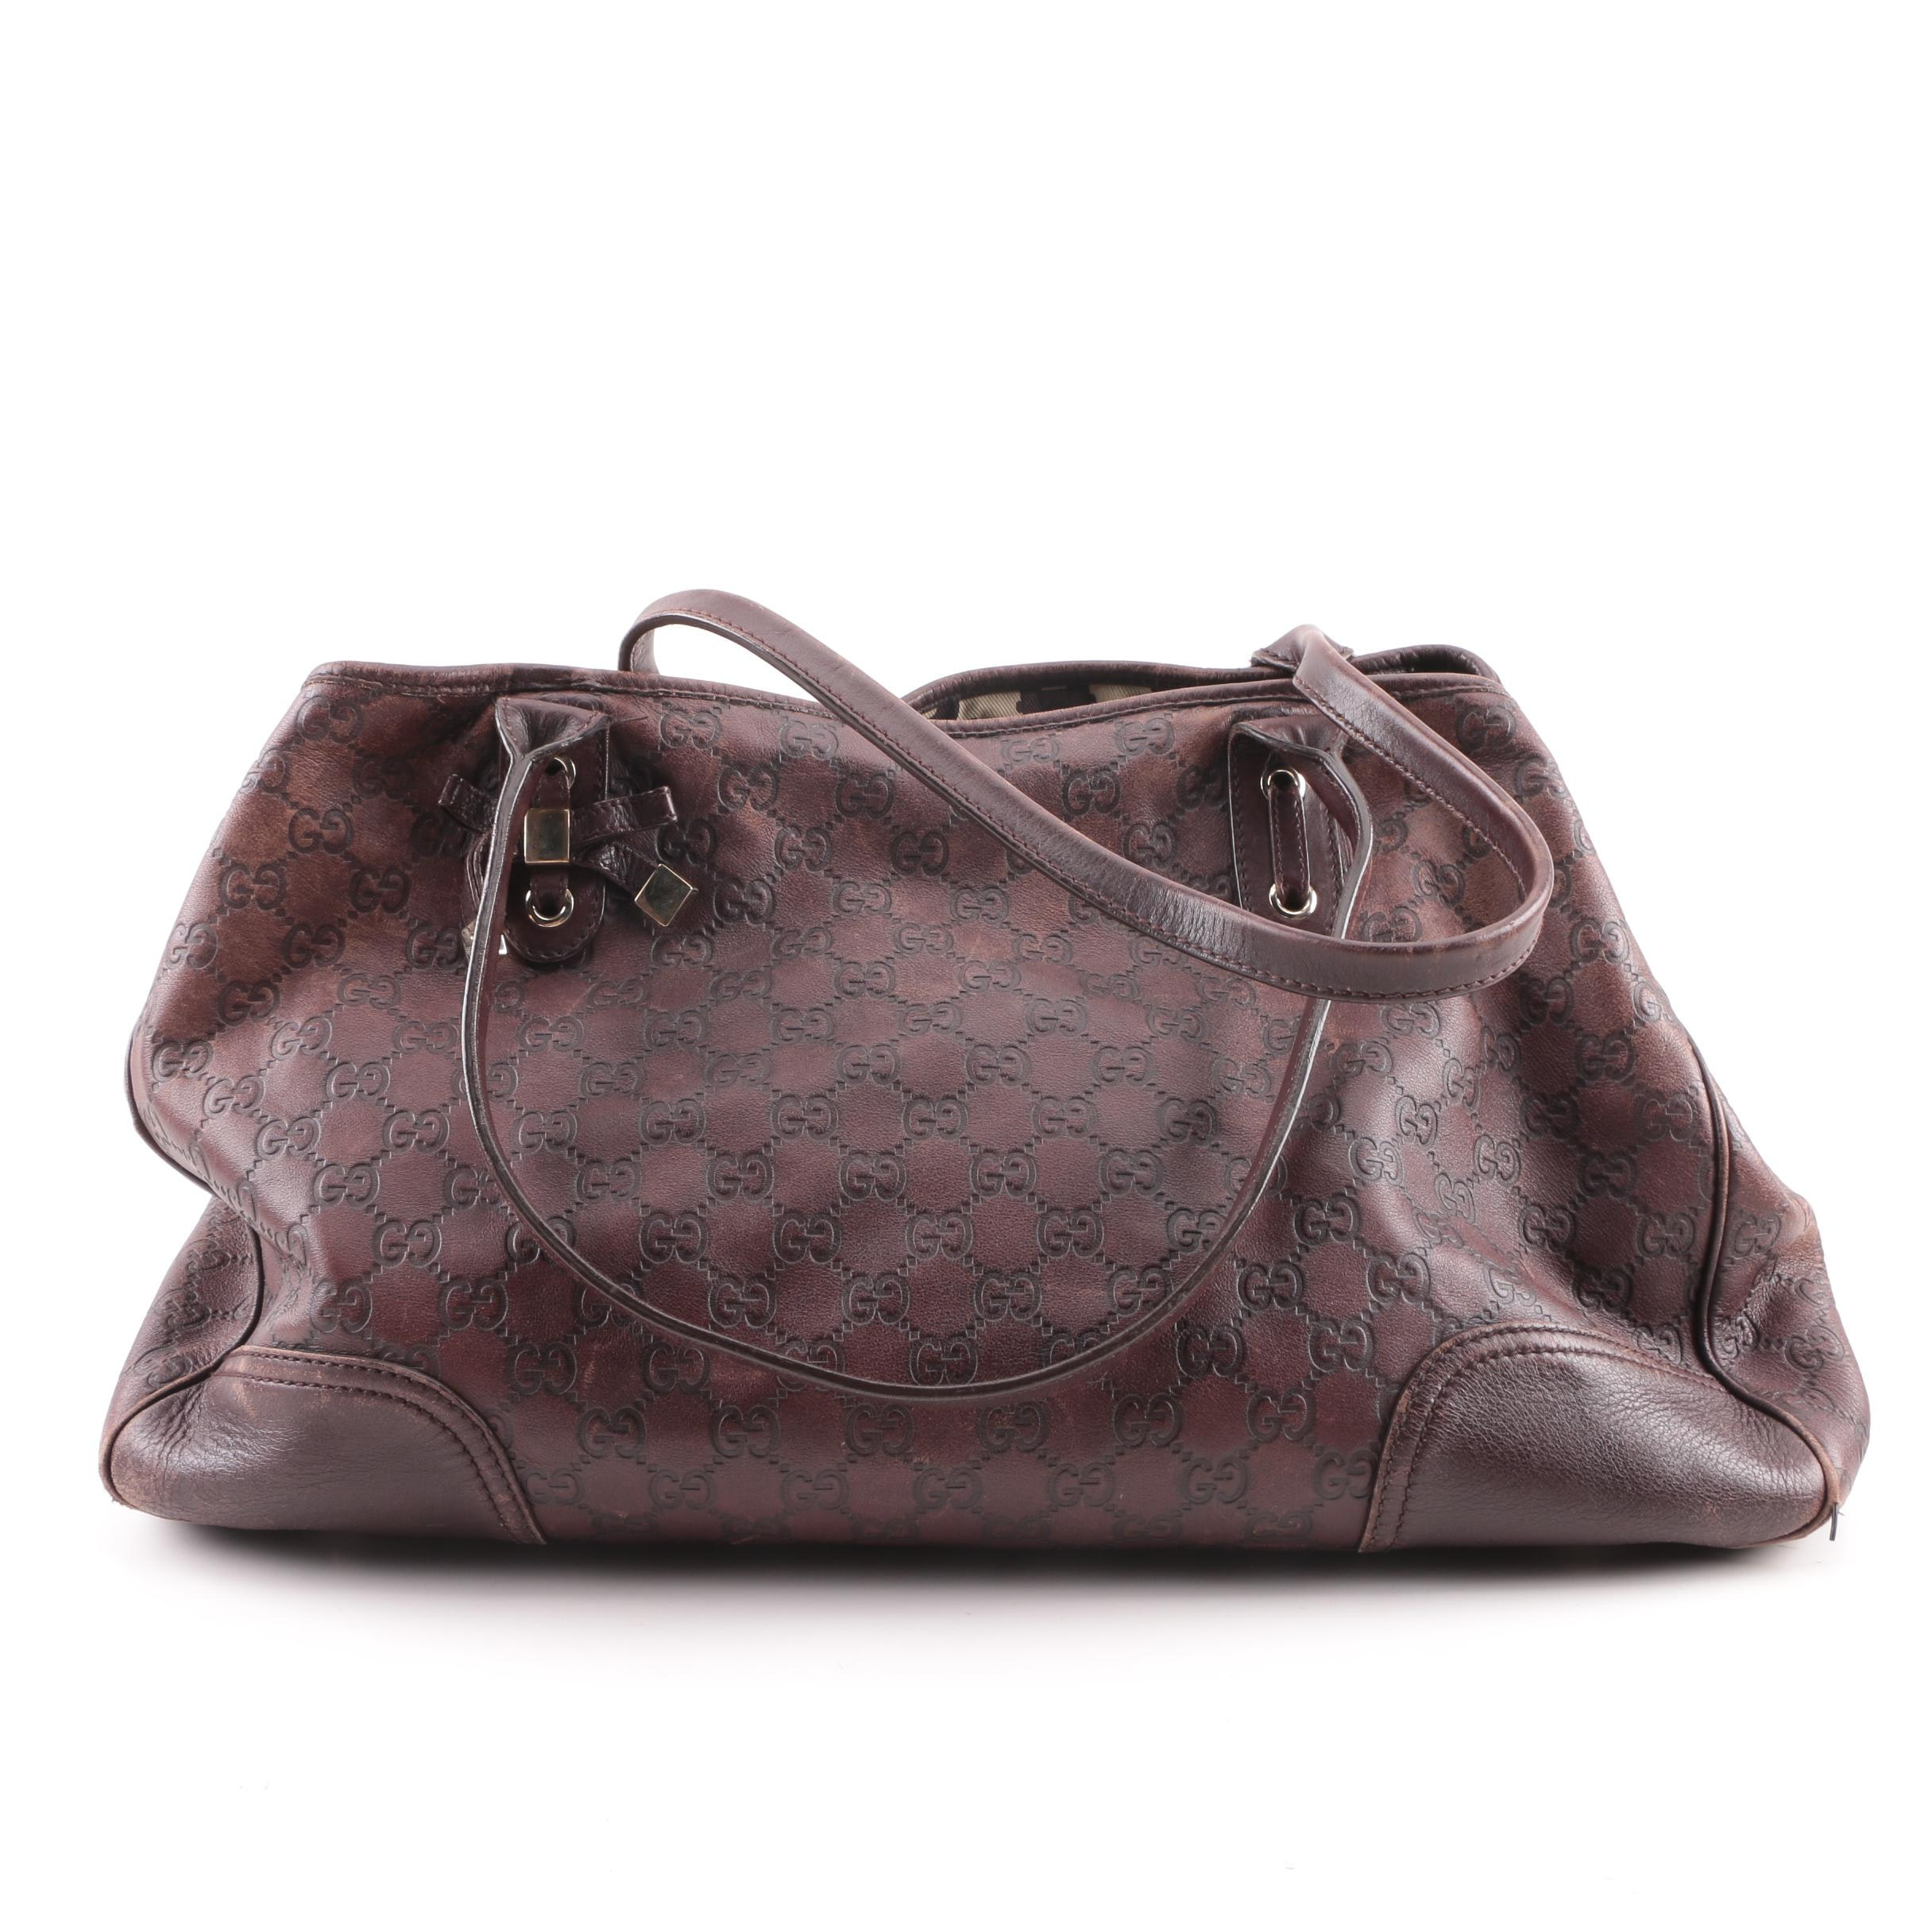 Gucci Princy Brown Guccissima Monogram Leather Tote Bag